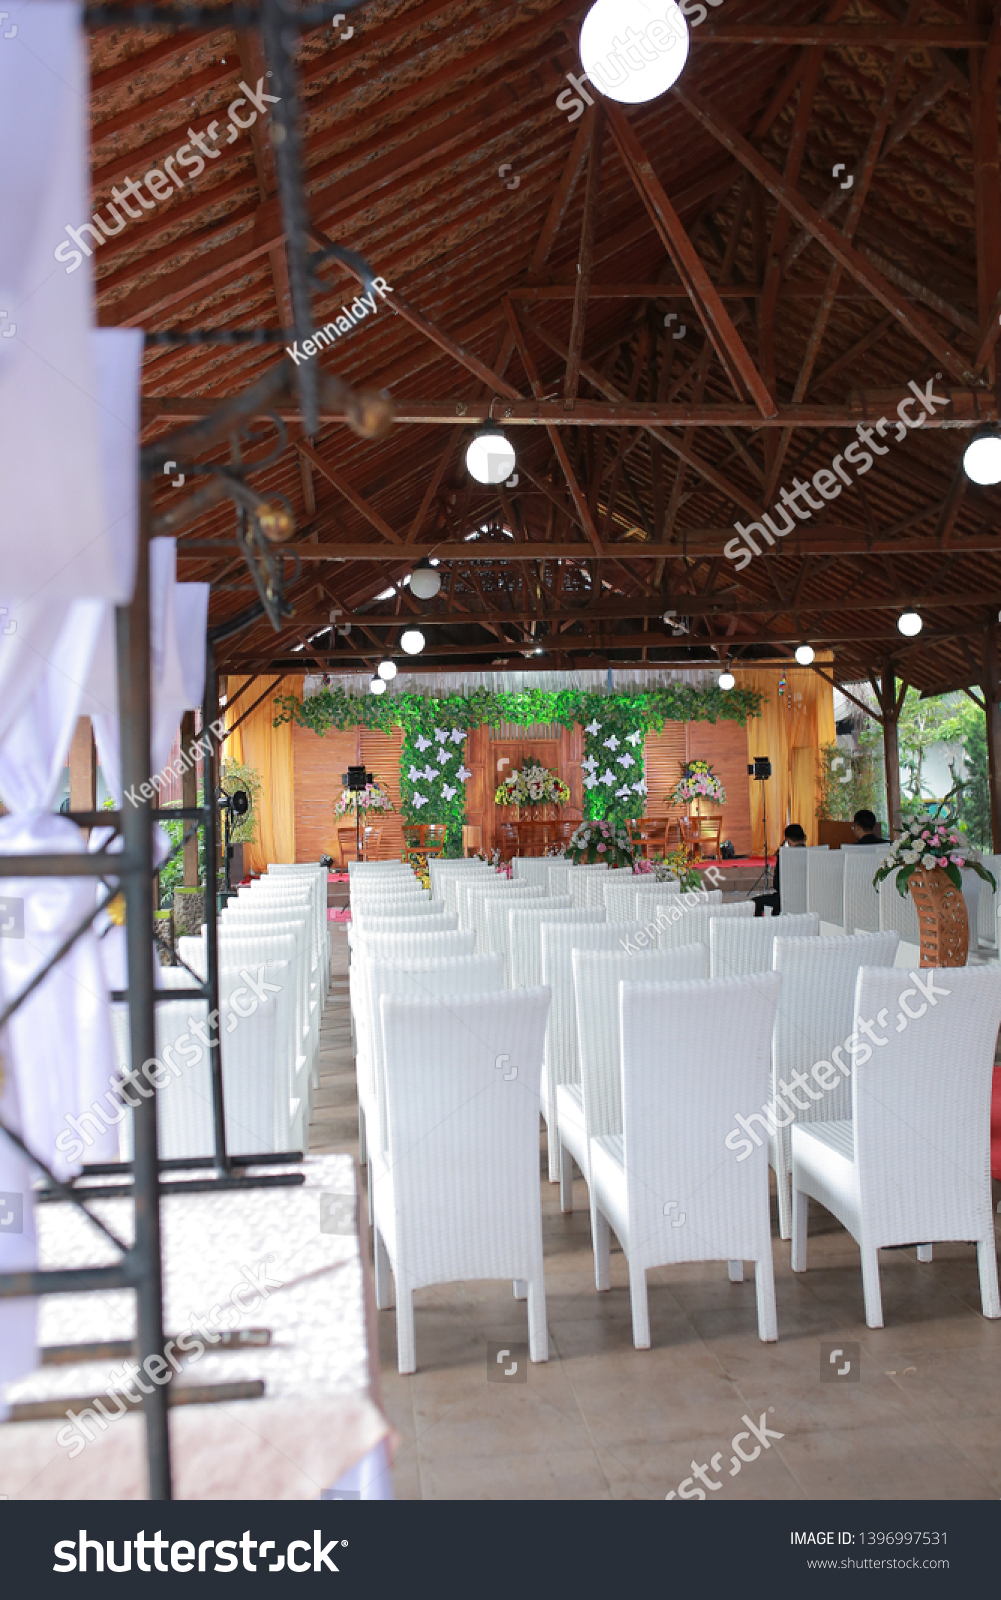 Simple Minimalist Wedding Decorations Make Wedding Stock Photo Edit Now 1396997531